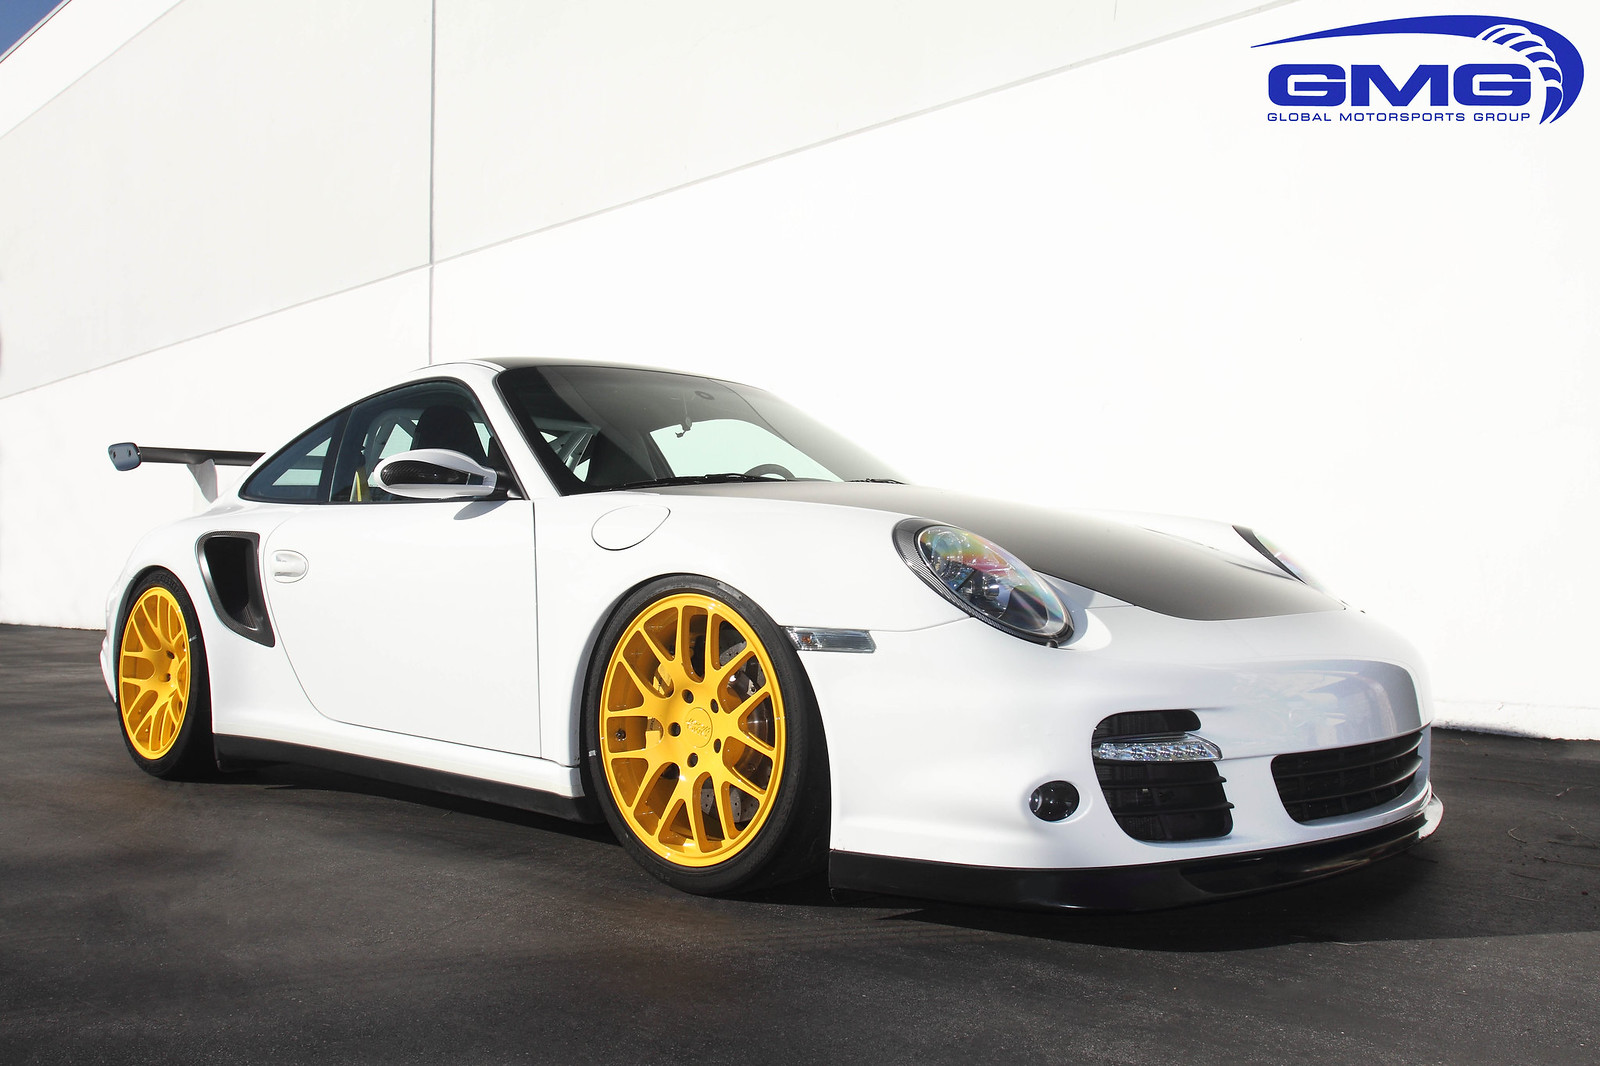 gmg racing wc gt 5 lug mesh forged wheel now available for porsche 997 turbo. Black Bedroom Furniture Sets. Home Design Ideas